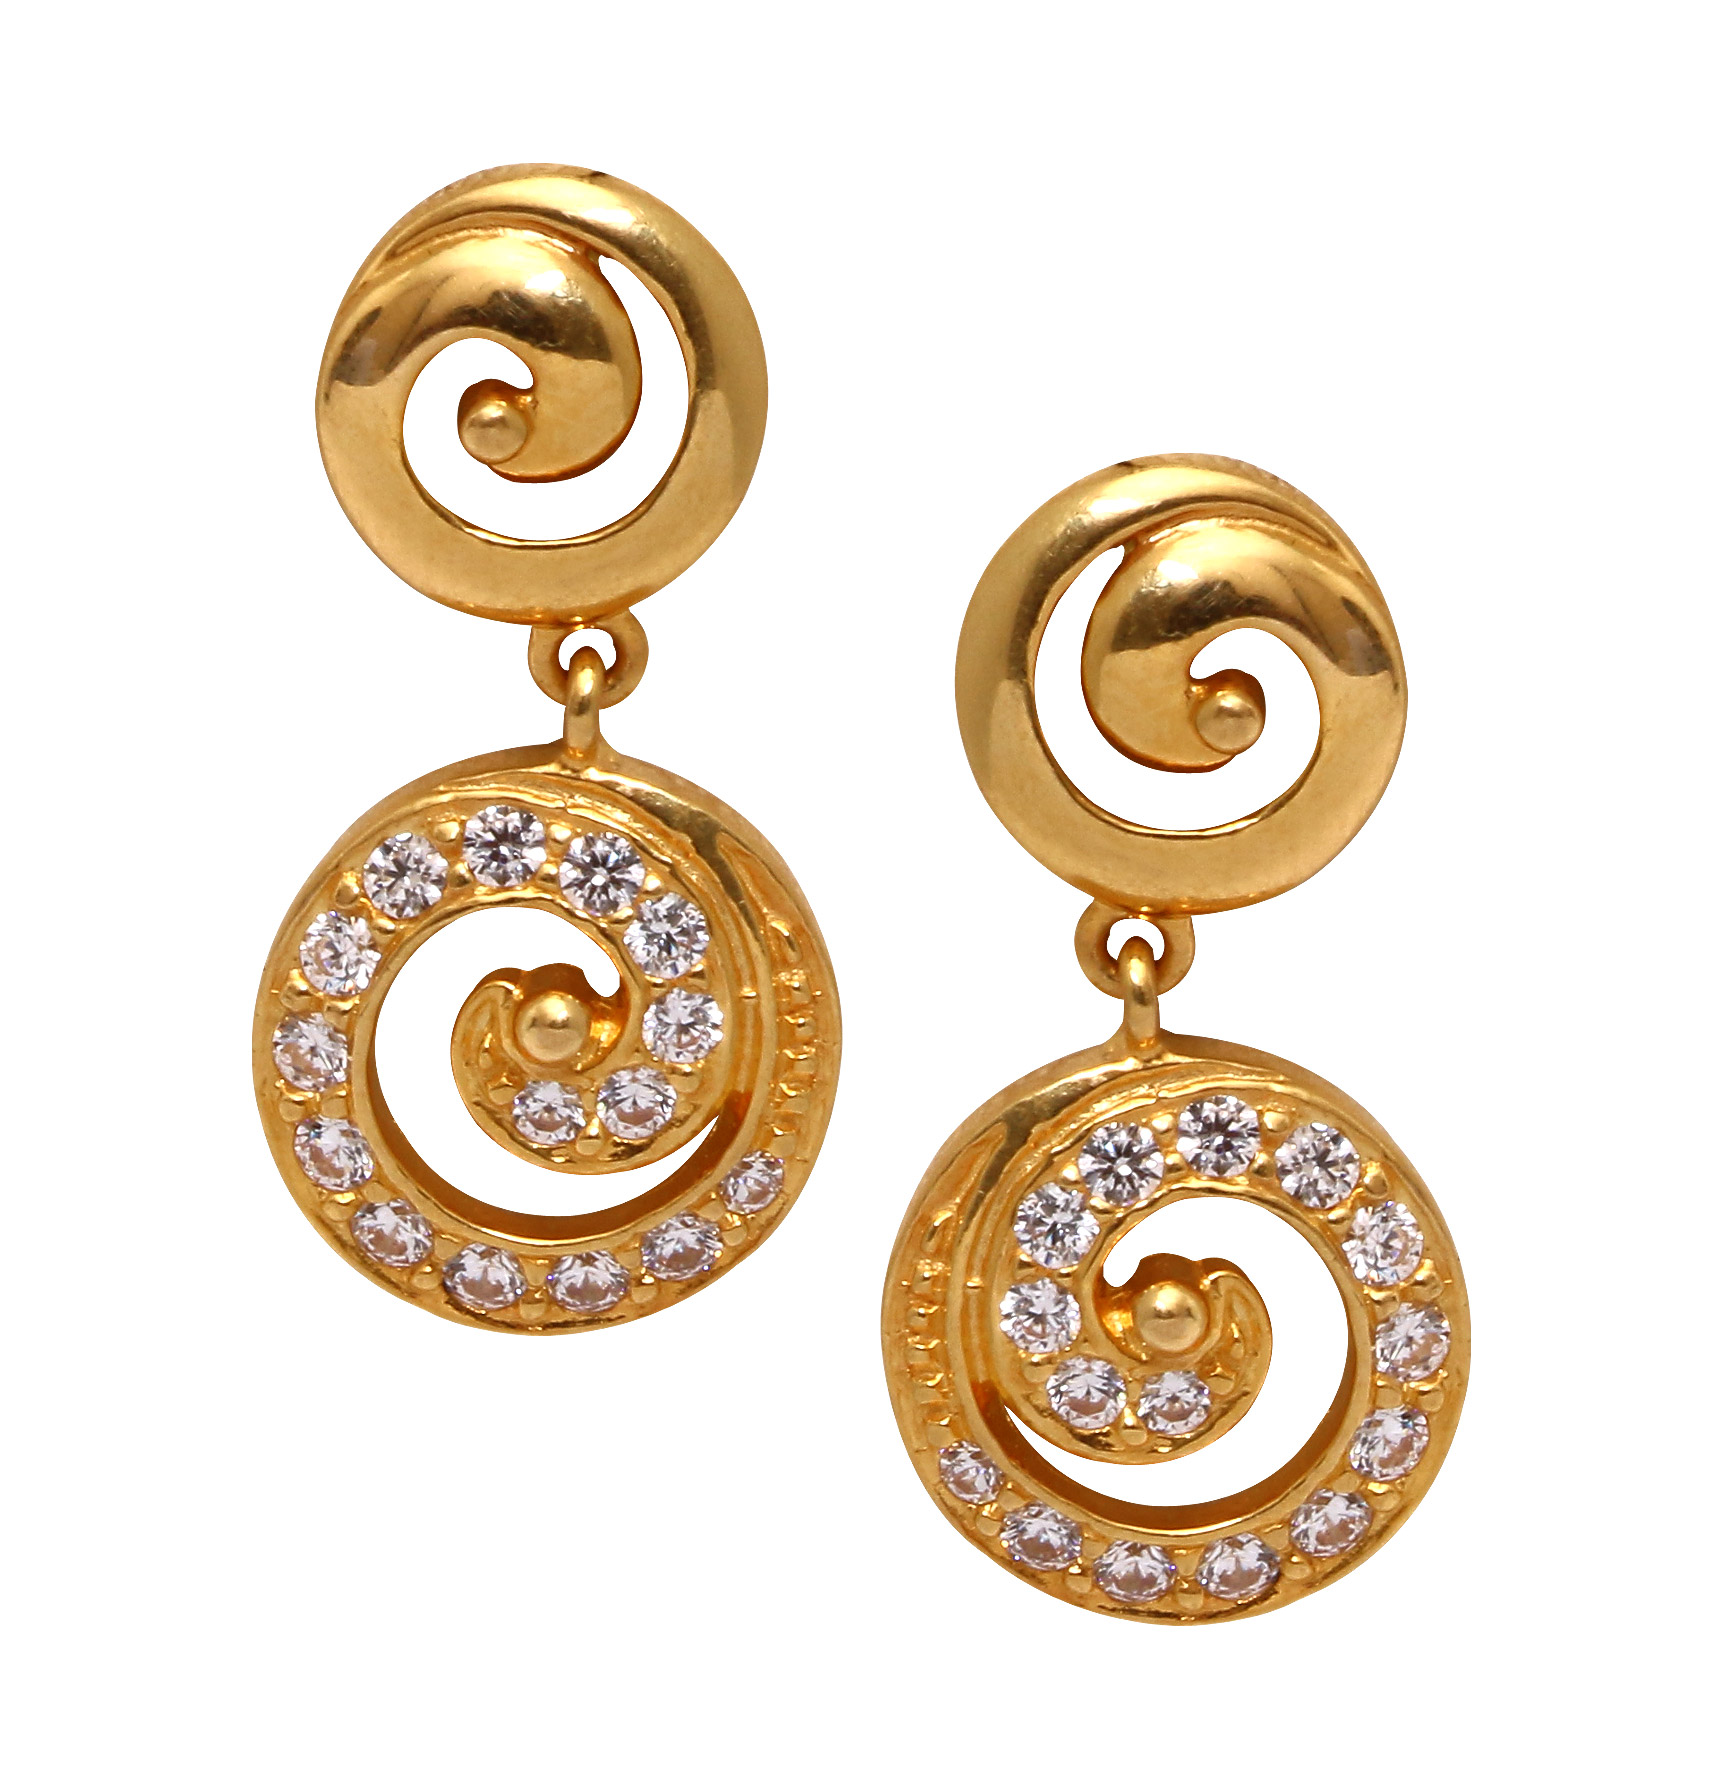 Earrings | GRT Jewellers – At Singapore from 3rd July